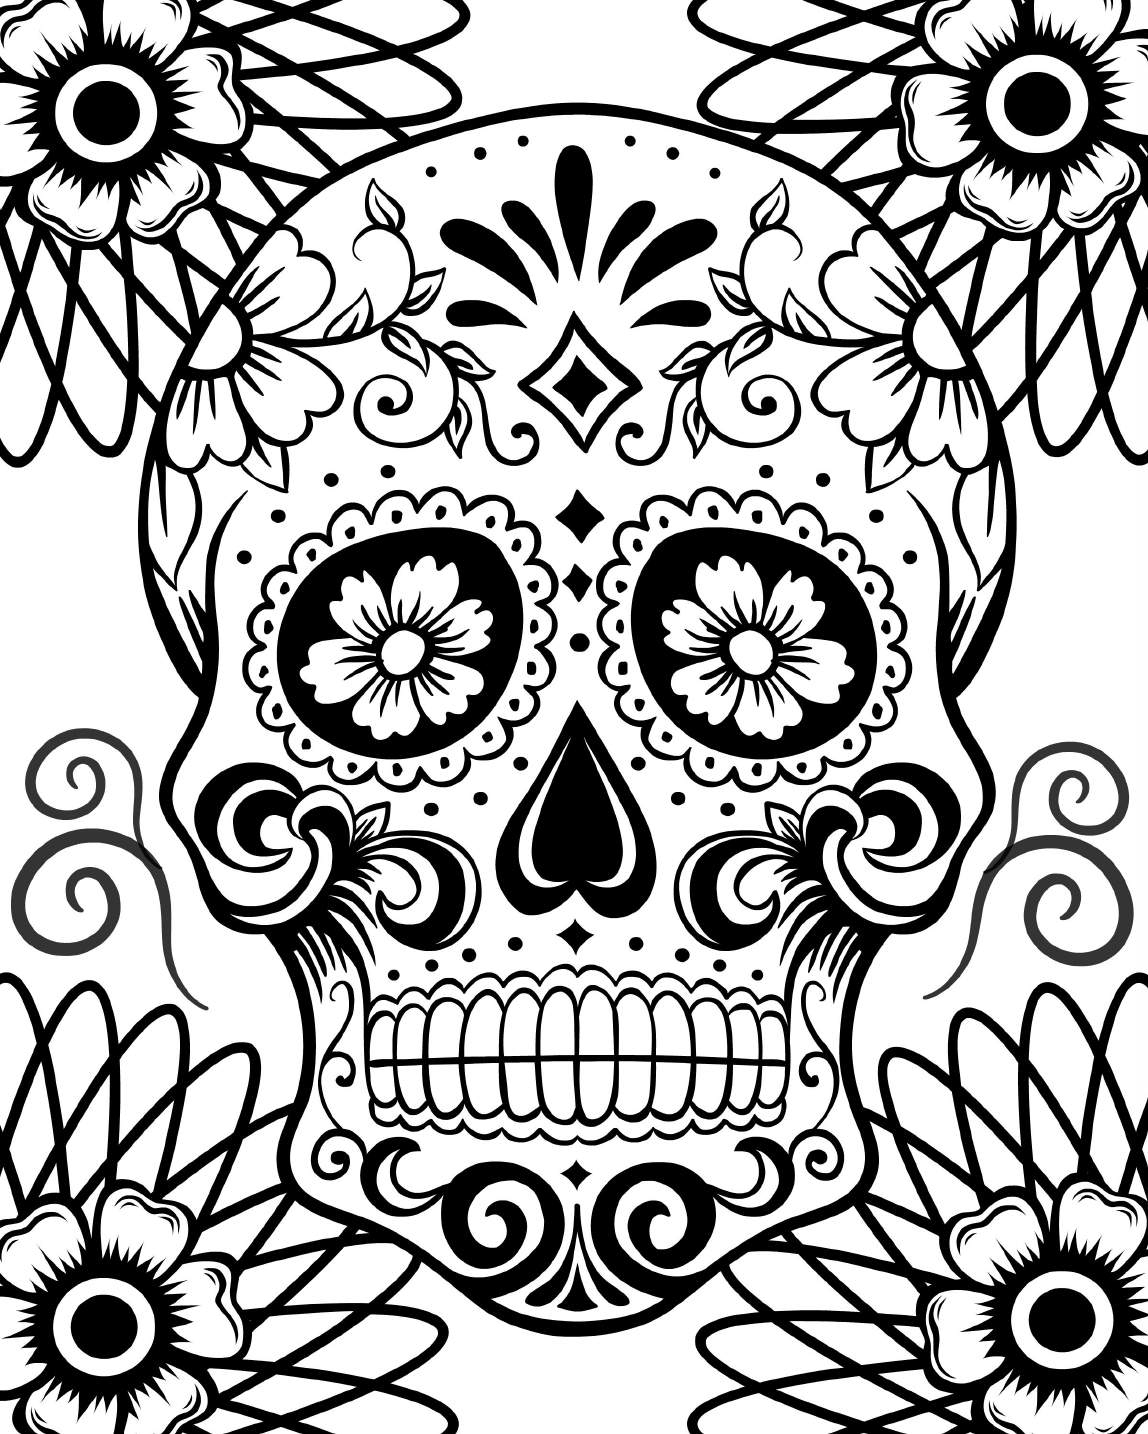 coloring skull day of the dead grateful dead skull coloring pages dead day skull coloring of the